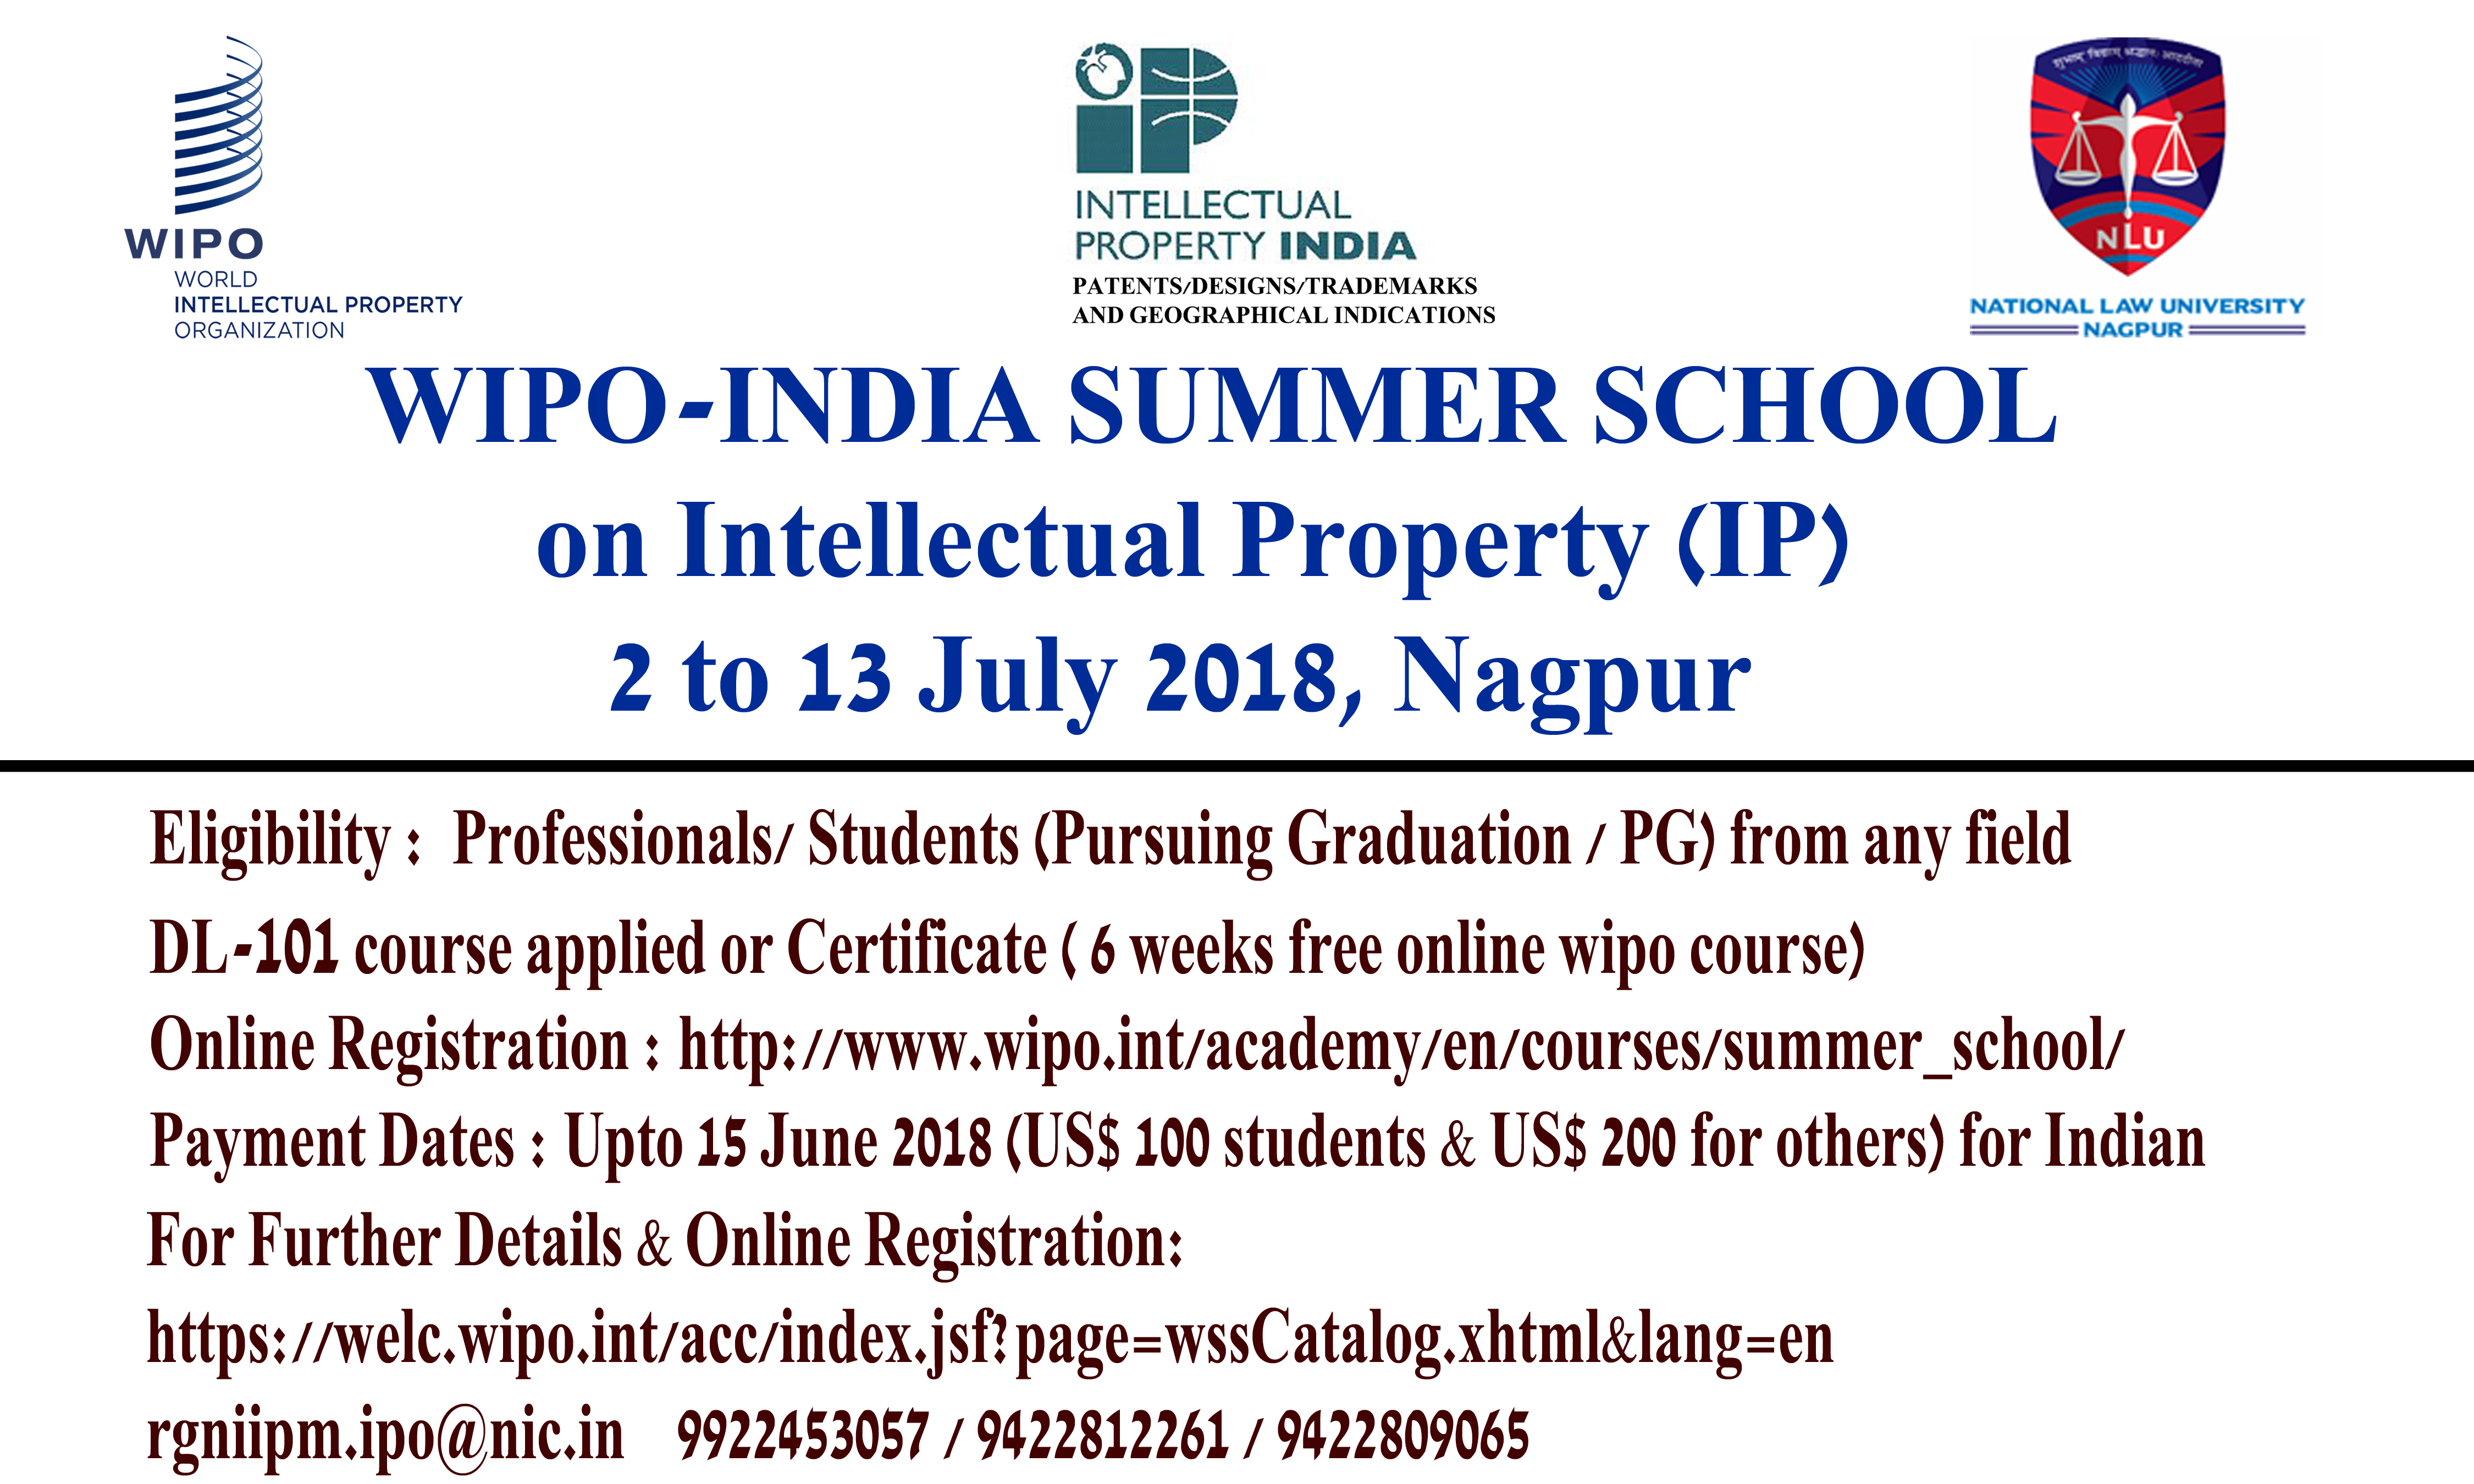 WIPO-India Training(2-13 July 2018)